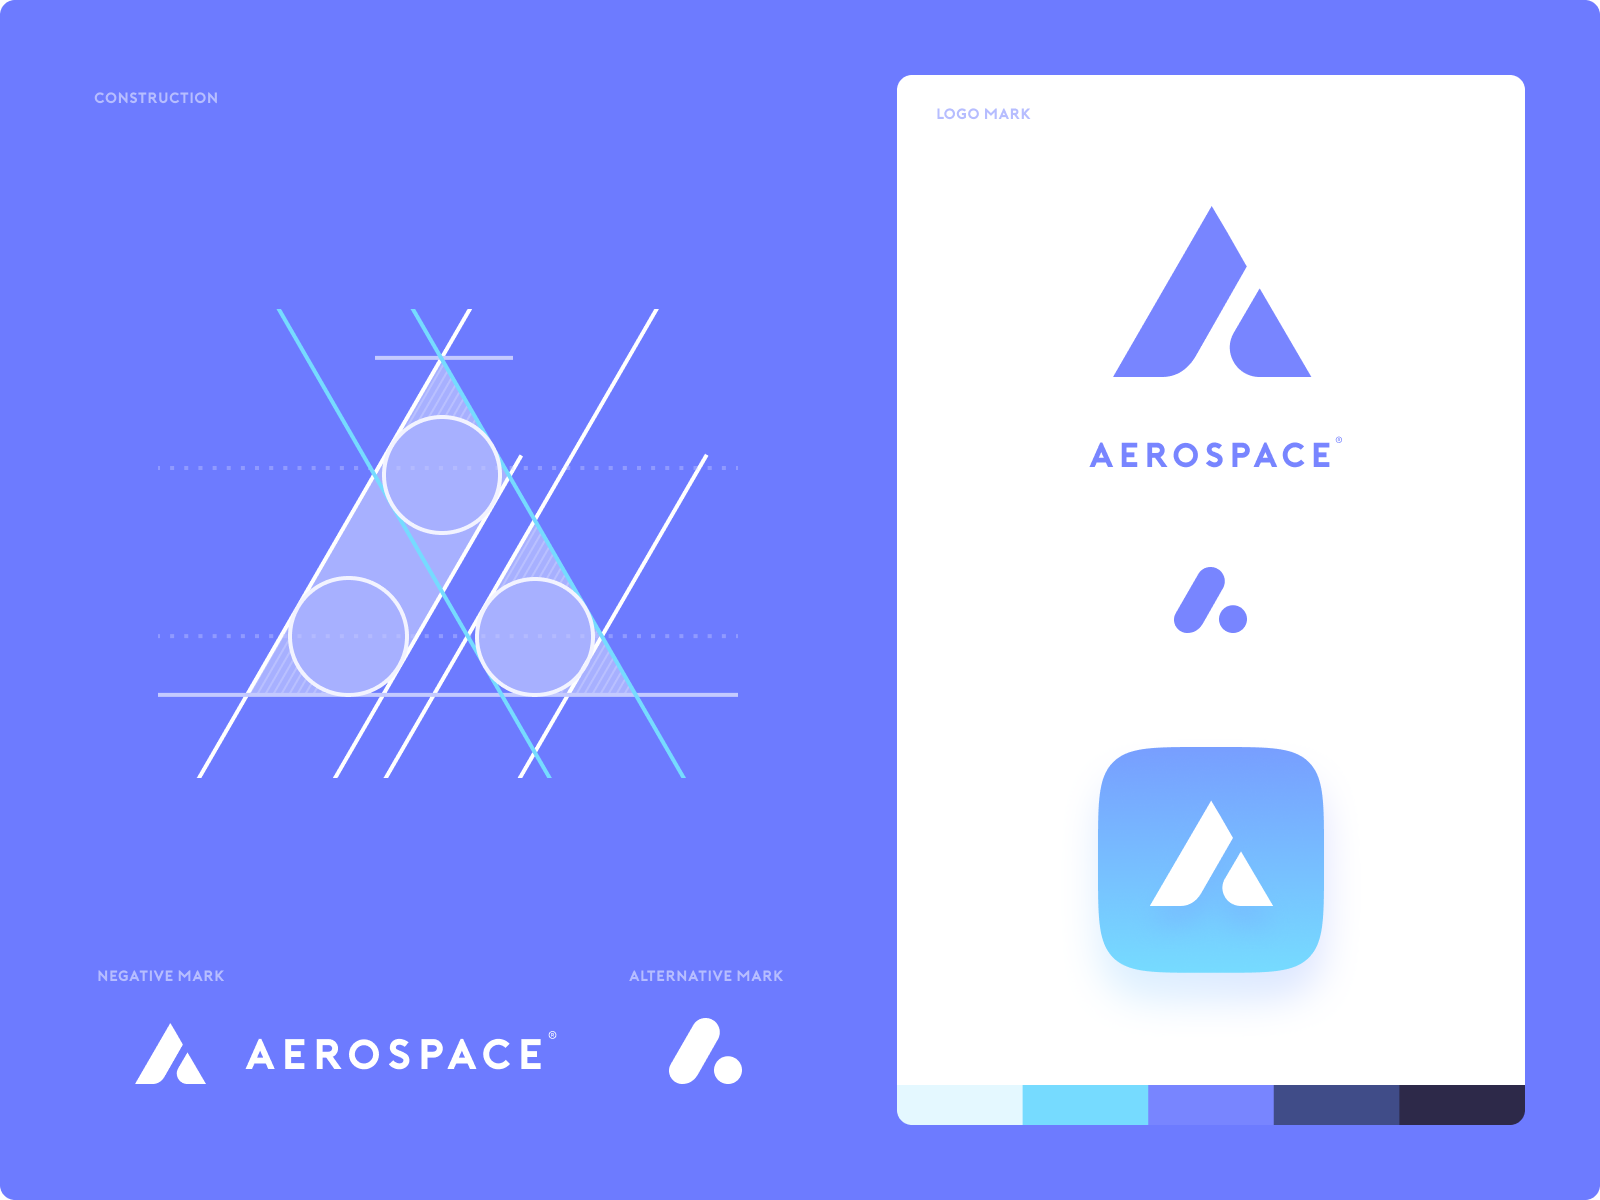 Aerospace - Logo Construction ios apple design mark iphone identity branding app illustration logo icon